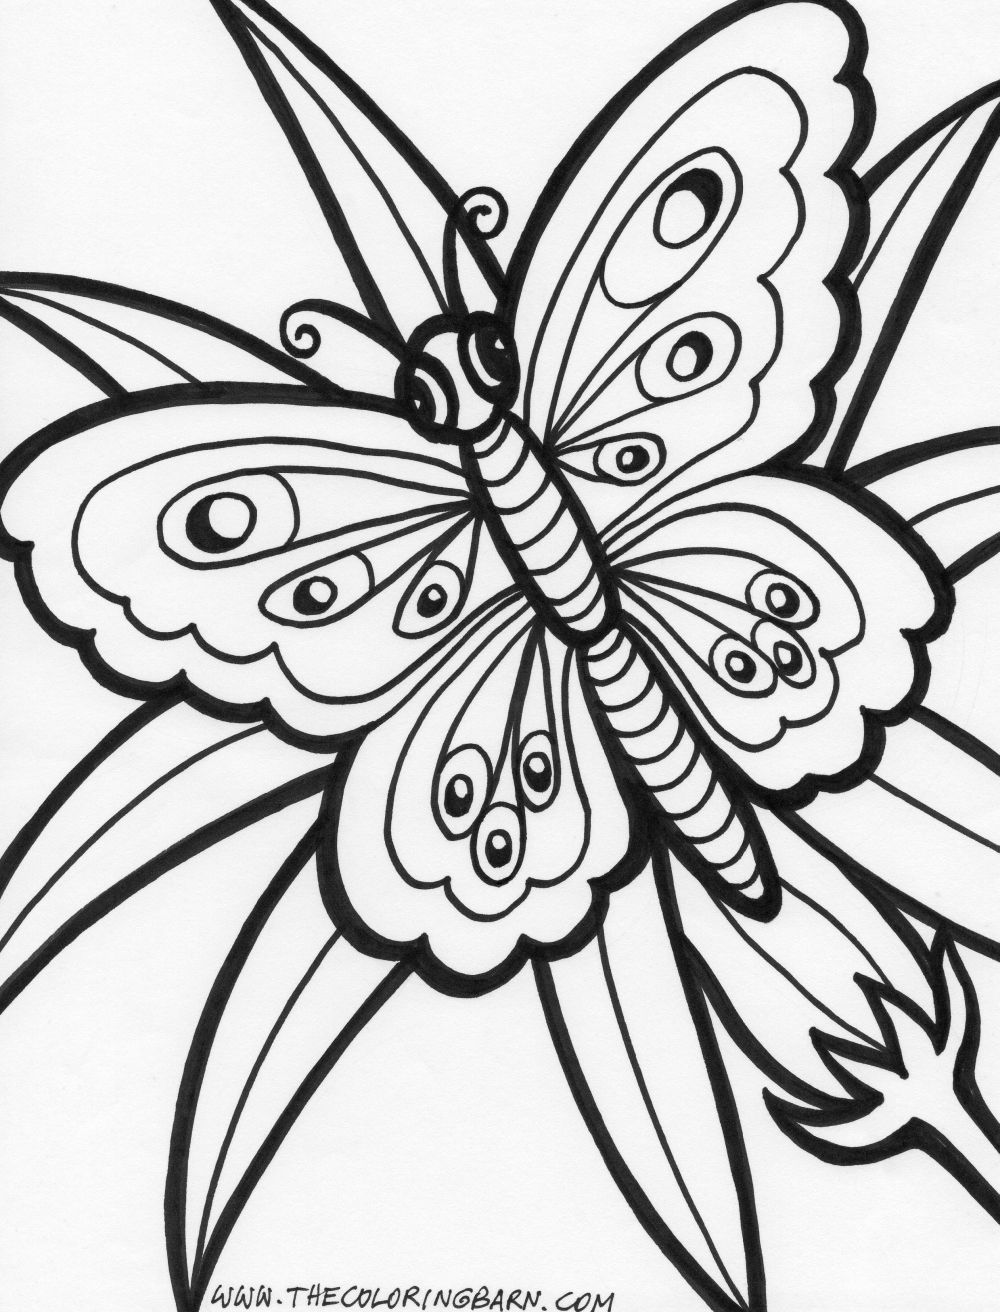 Flower Coloring Pages For Girls 10 And Up - Coloring Home  Flower Coloring Pages For Girls 10 And Up